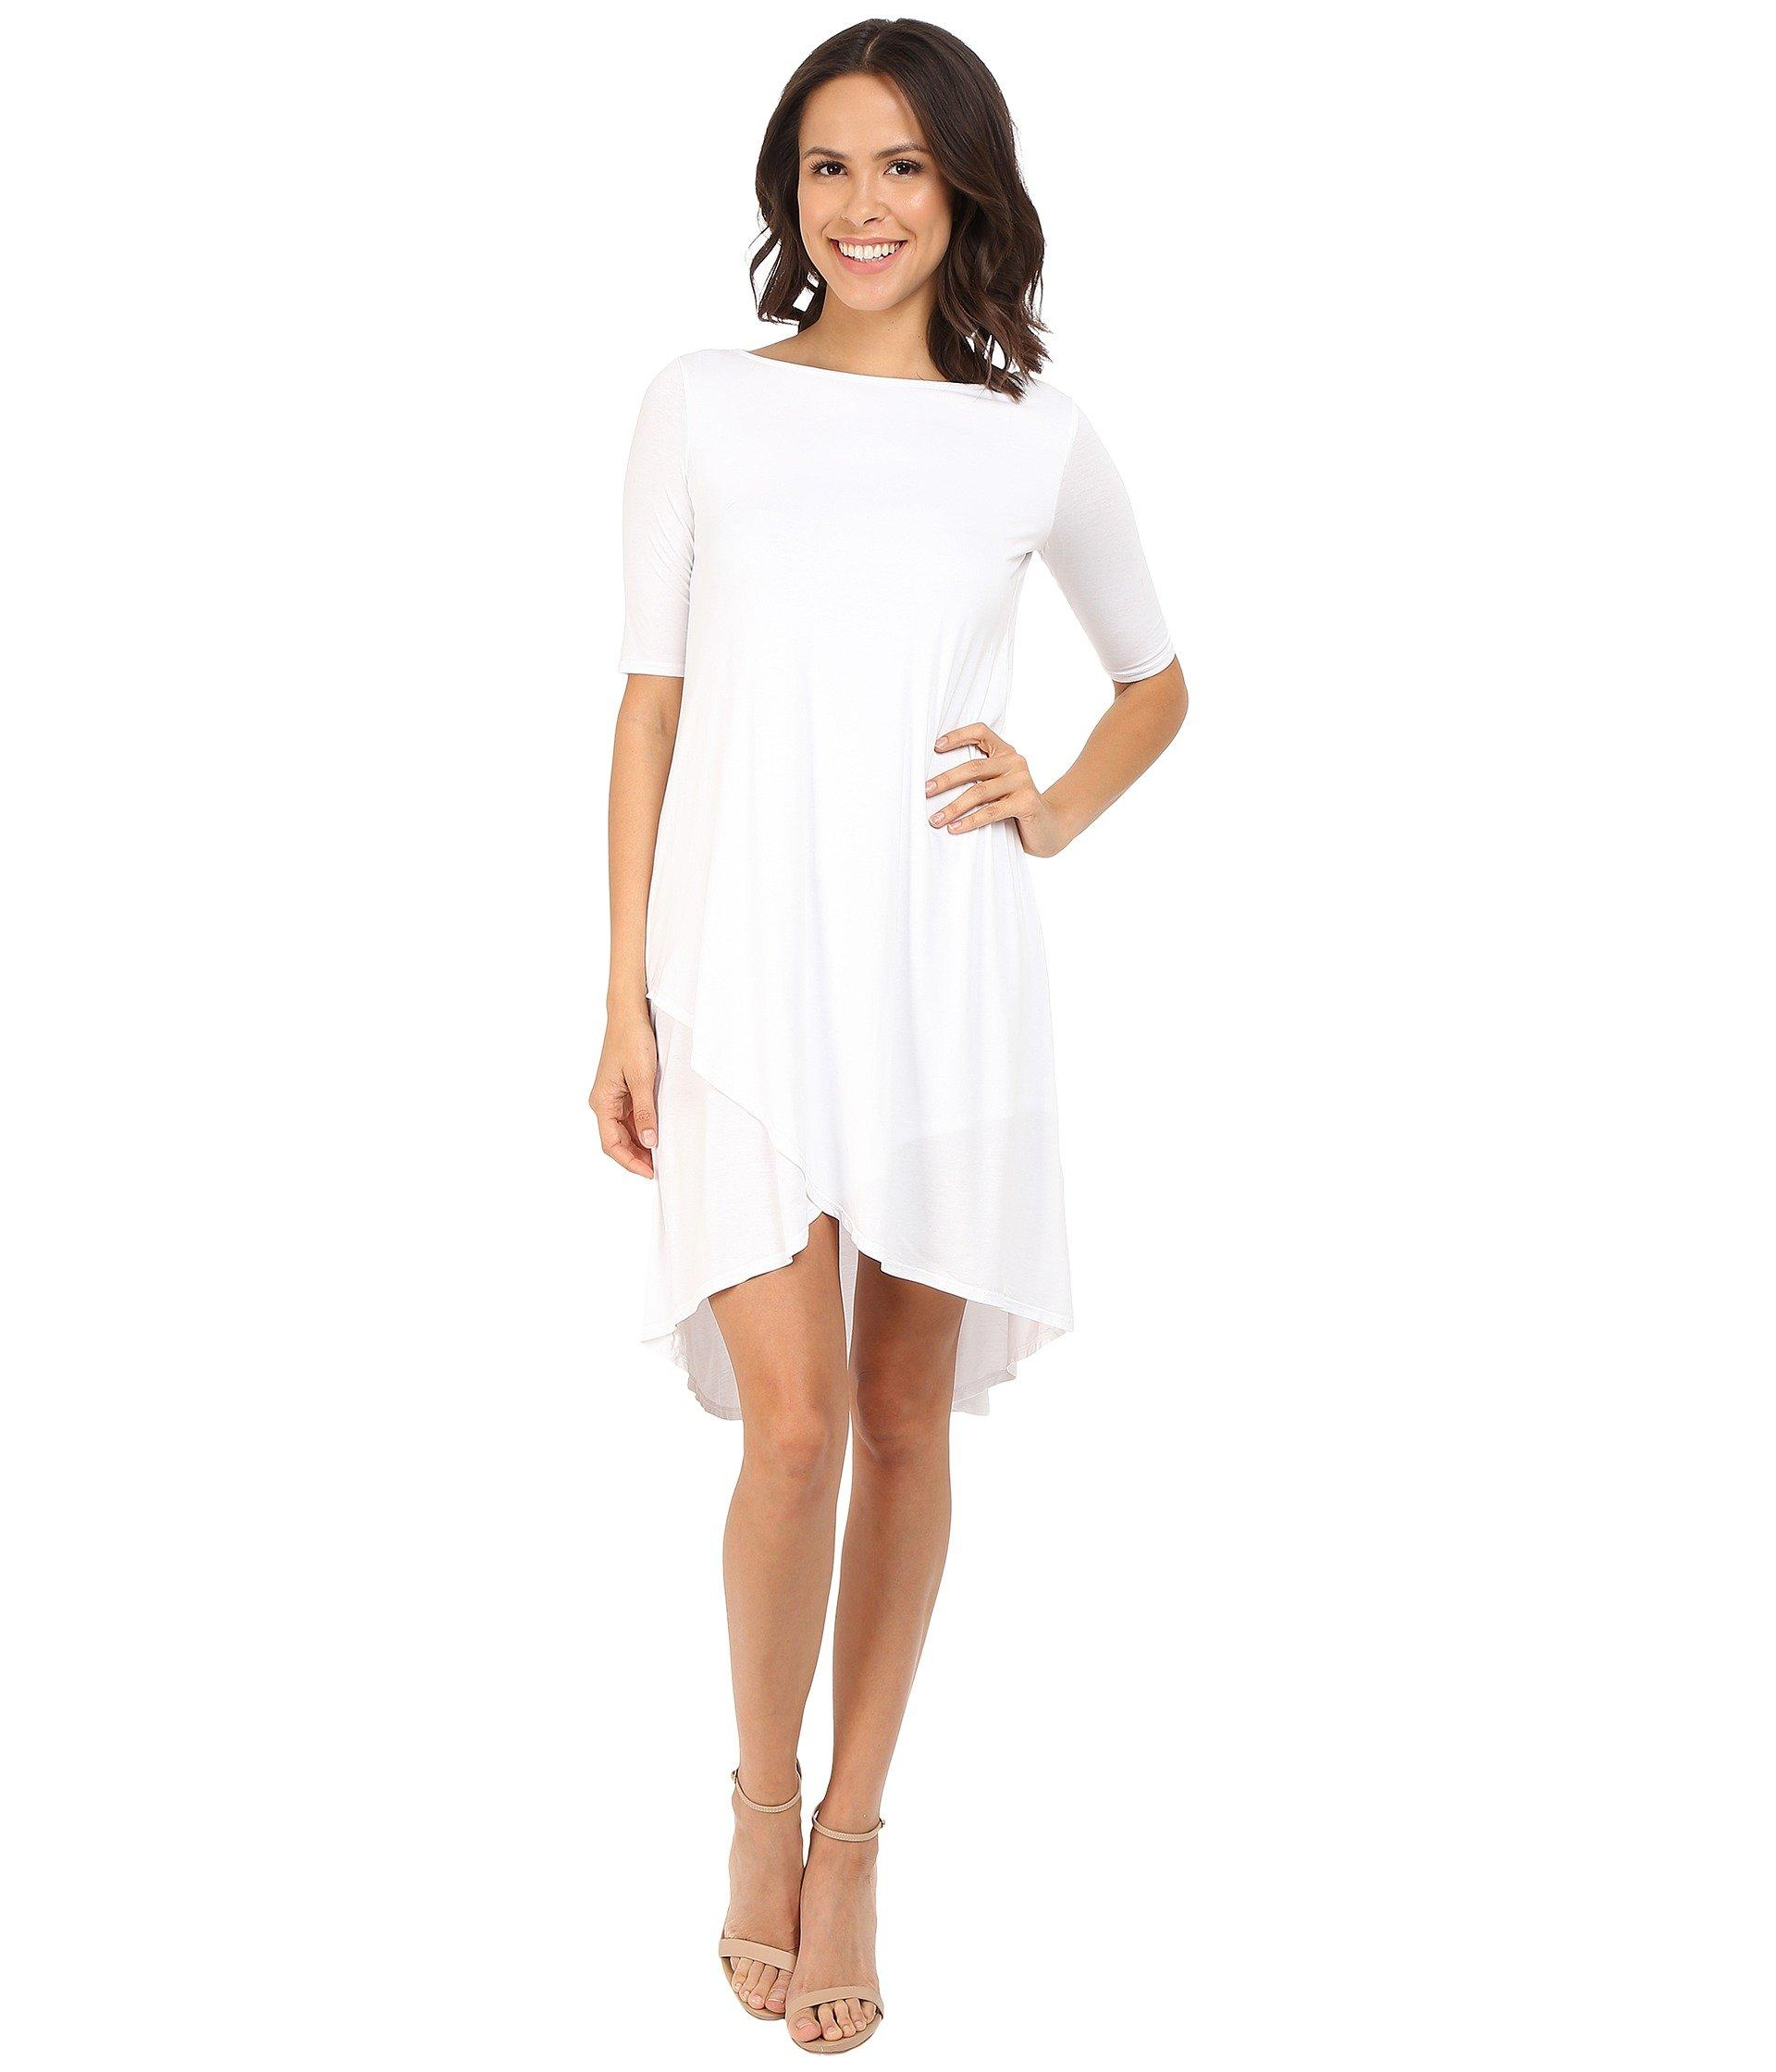 55abcf23f4 Lyst - Three Dots Olya A 3/4 Sleeve High-low Dress in White